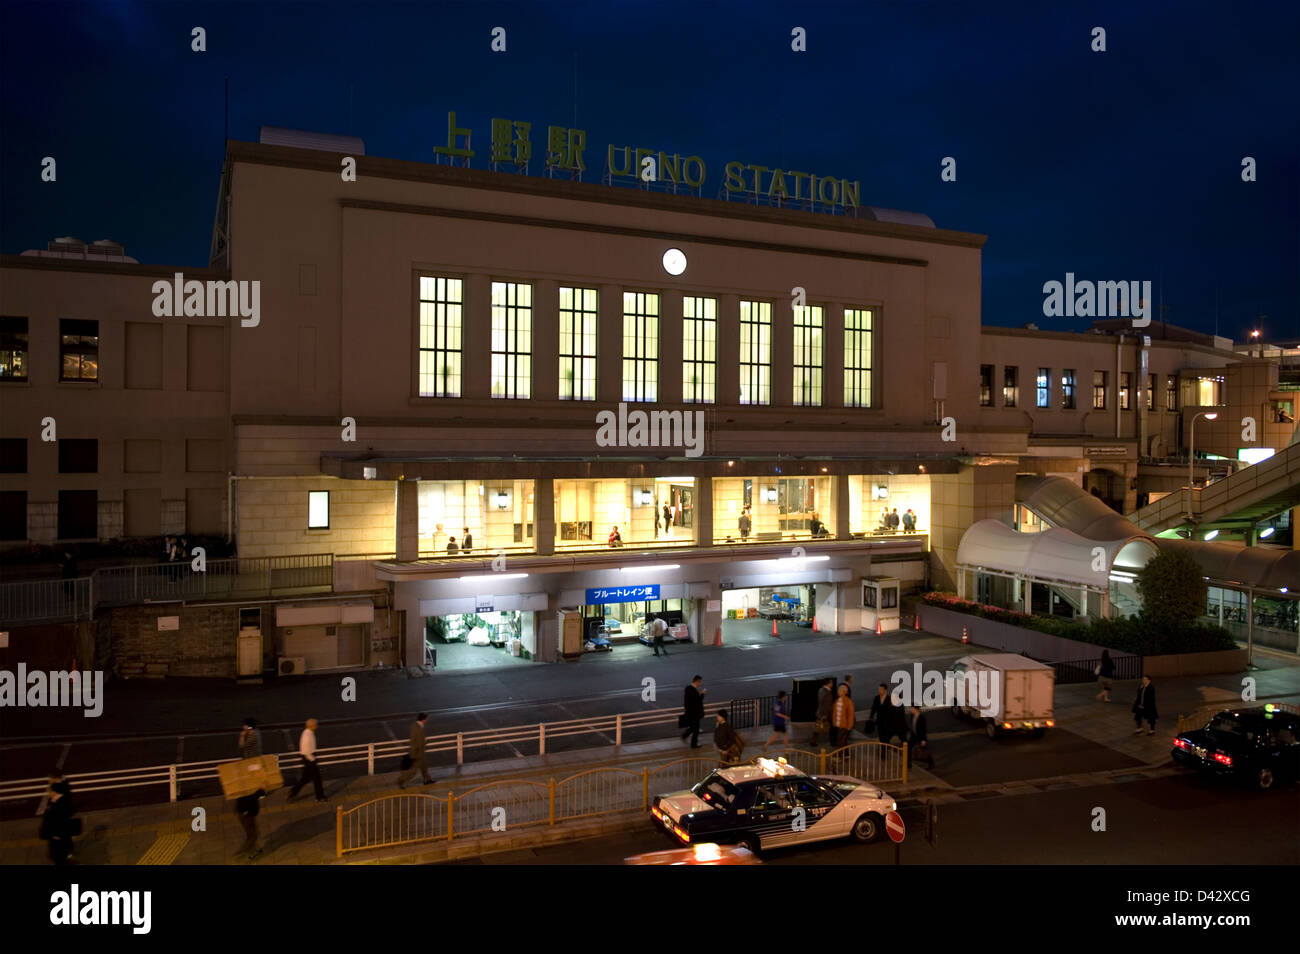 Night time view of the main facade of the Japan Railway (JR) Ueno Station in downtown Tokyo built in 1932. - Stock Image